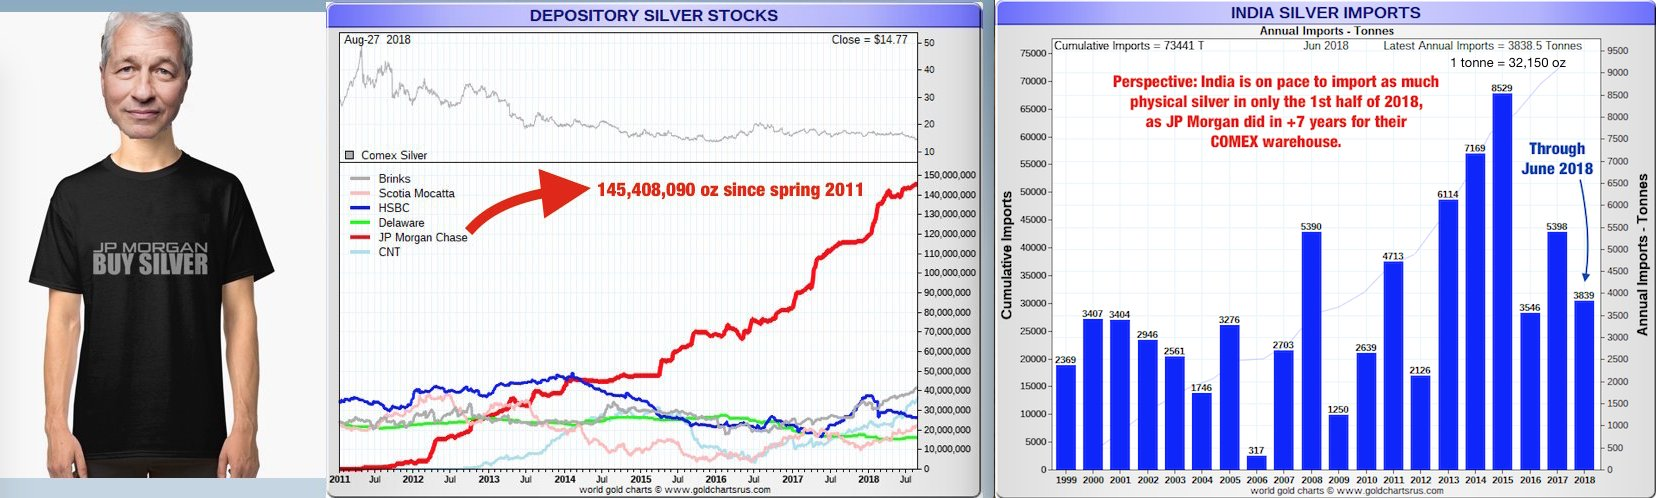 Emerging Market Currency Chaos | Silver Fortune India has imported more silver in 2018 than JP Morgan has in the COMEX